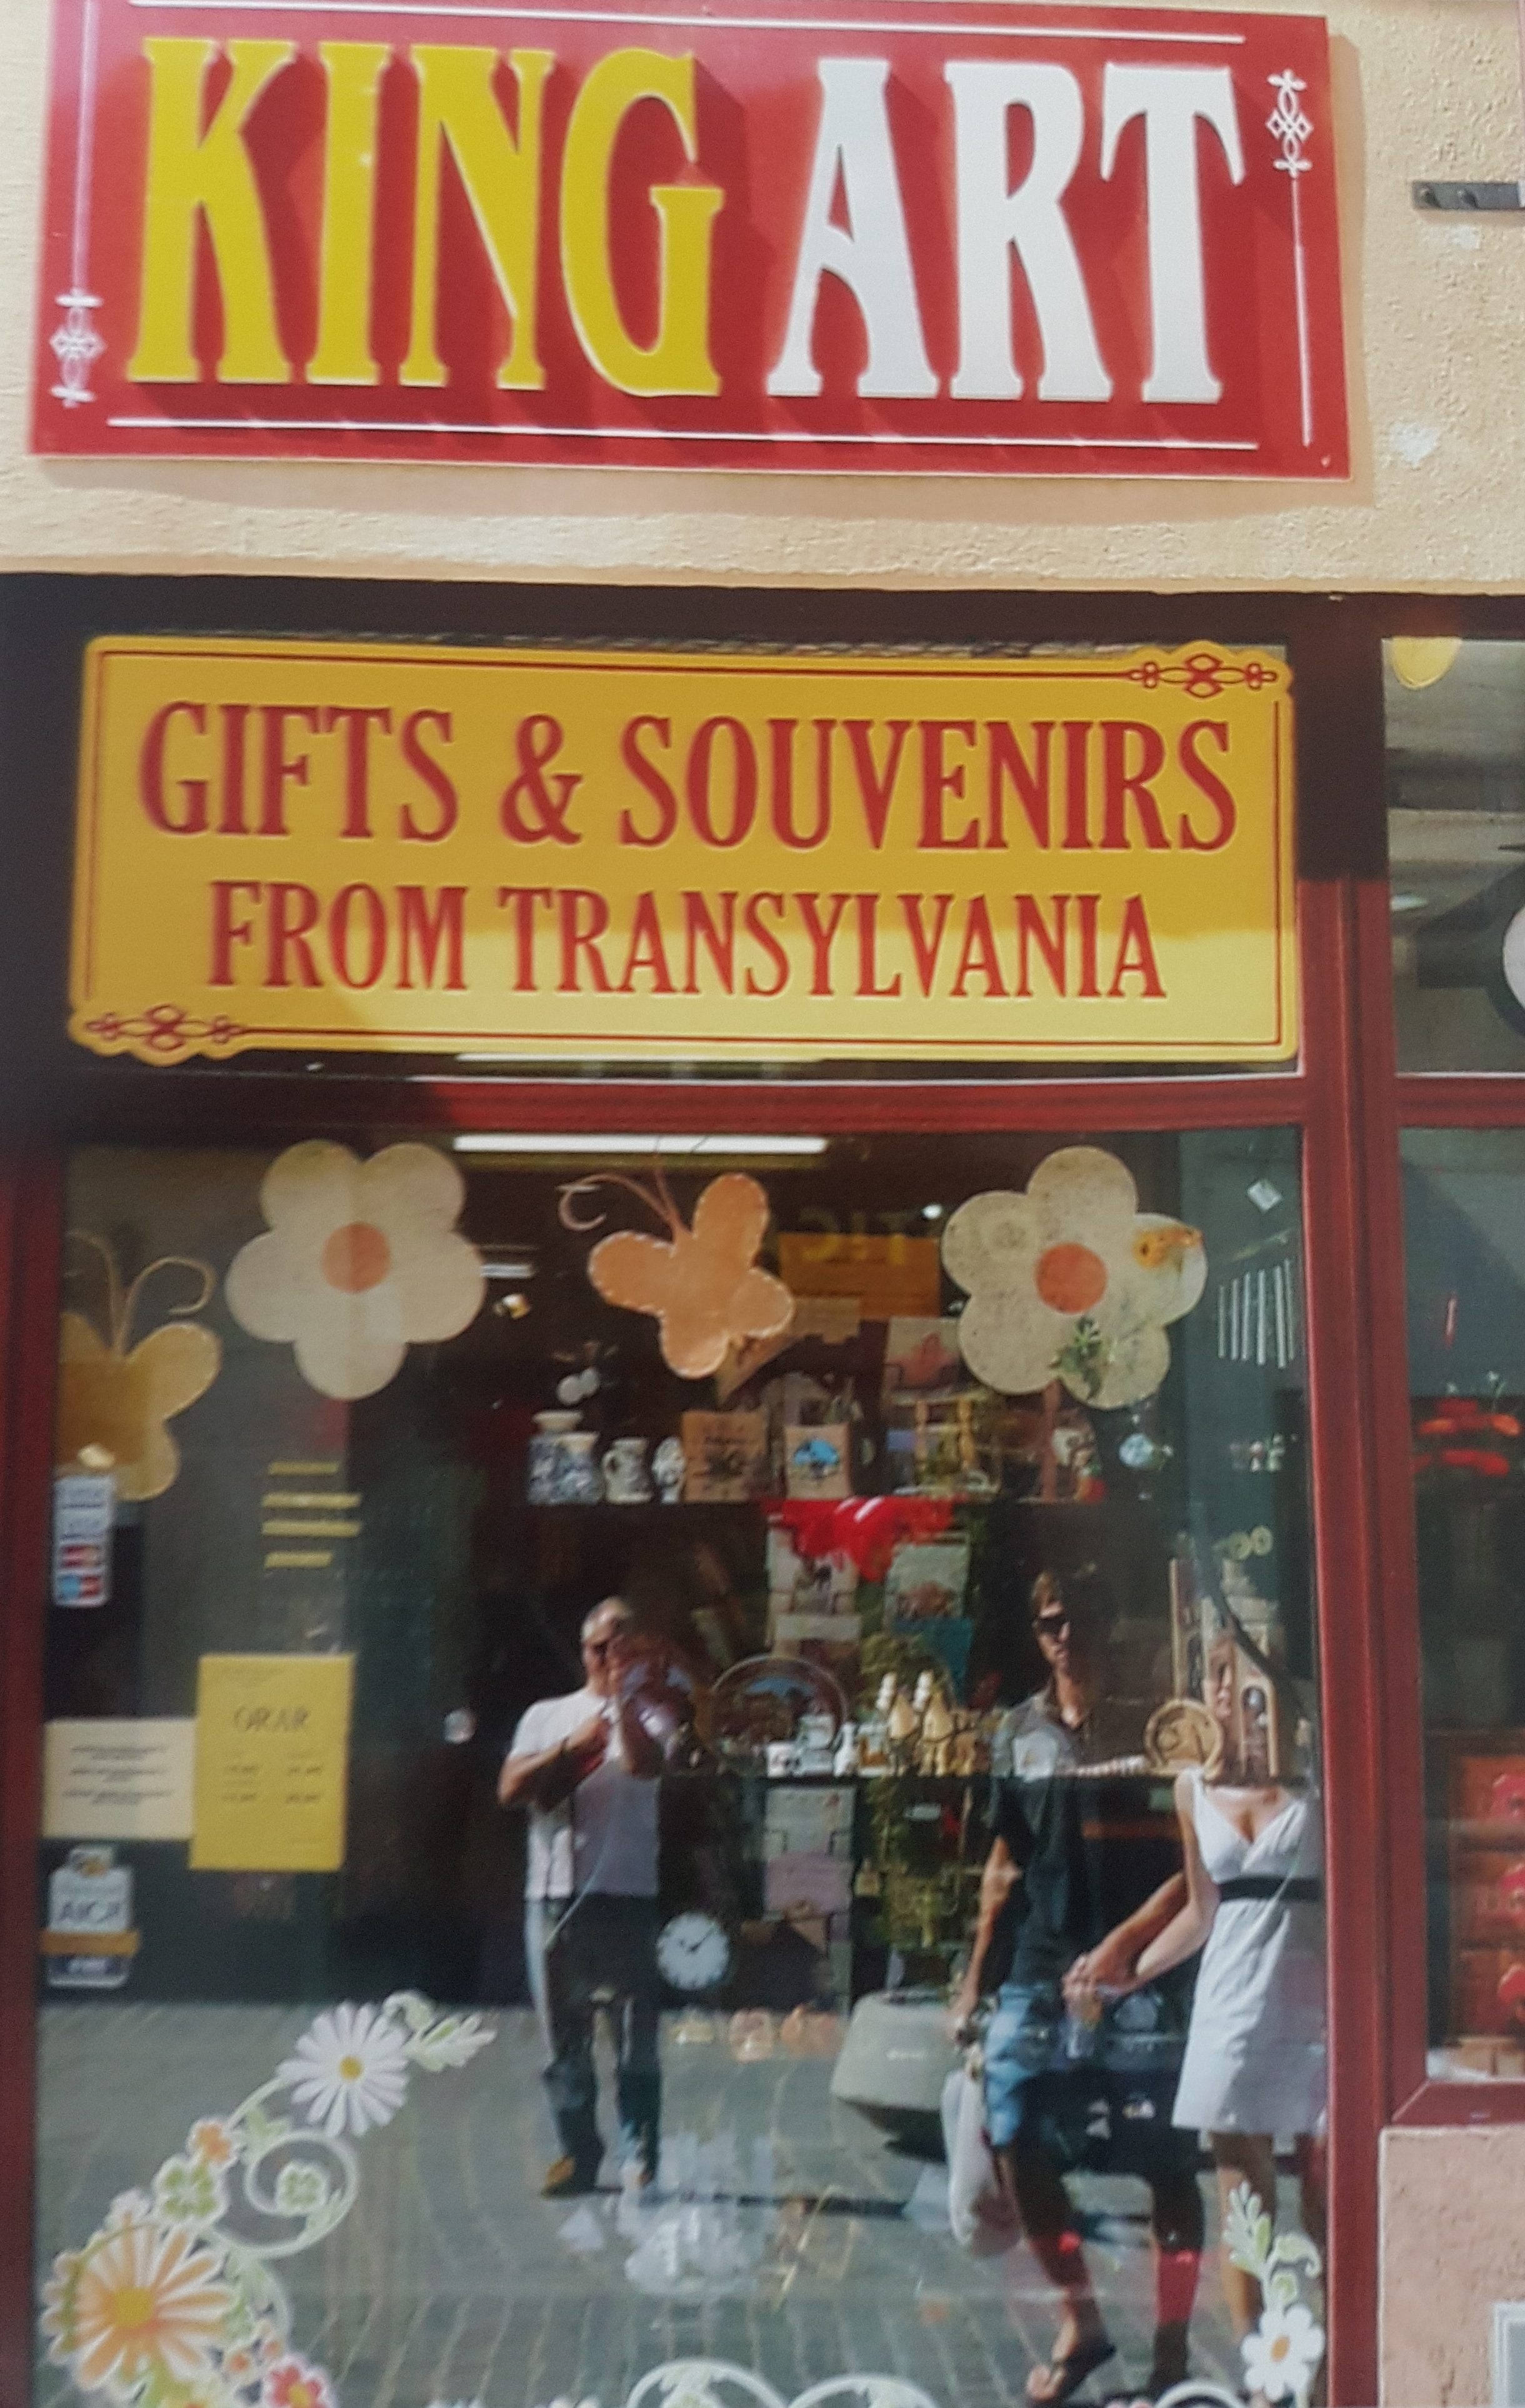 One of the more popular gifts and souvenirs shops which tourists to Brasov will visit. You can see MG's reflection on the window. MG Michael archives